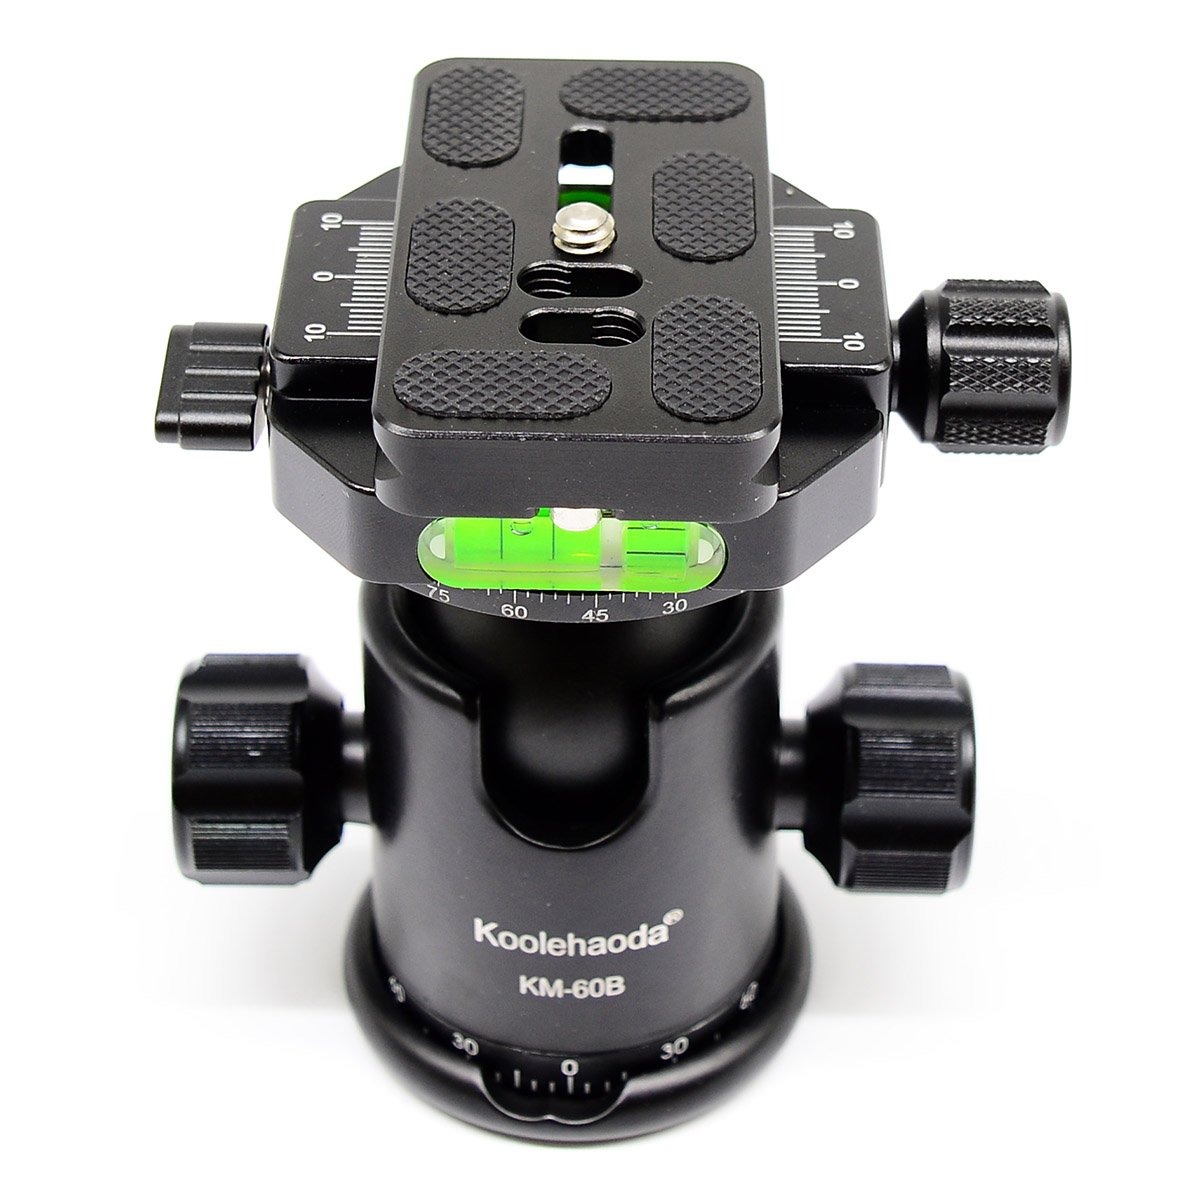 koolehaoda professional Ball Head double Panoramic Head with Quick Release Plate For Camera Tripod,Maximum load: 15KG (KM-60B Panoramic Head)